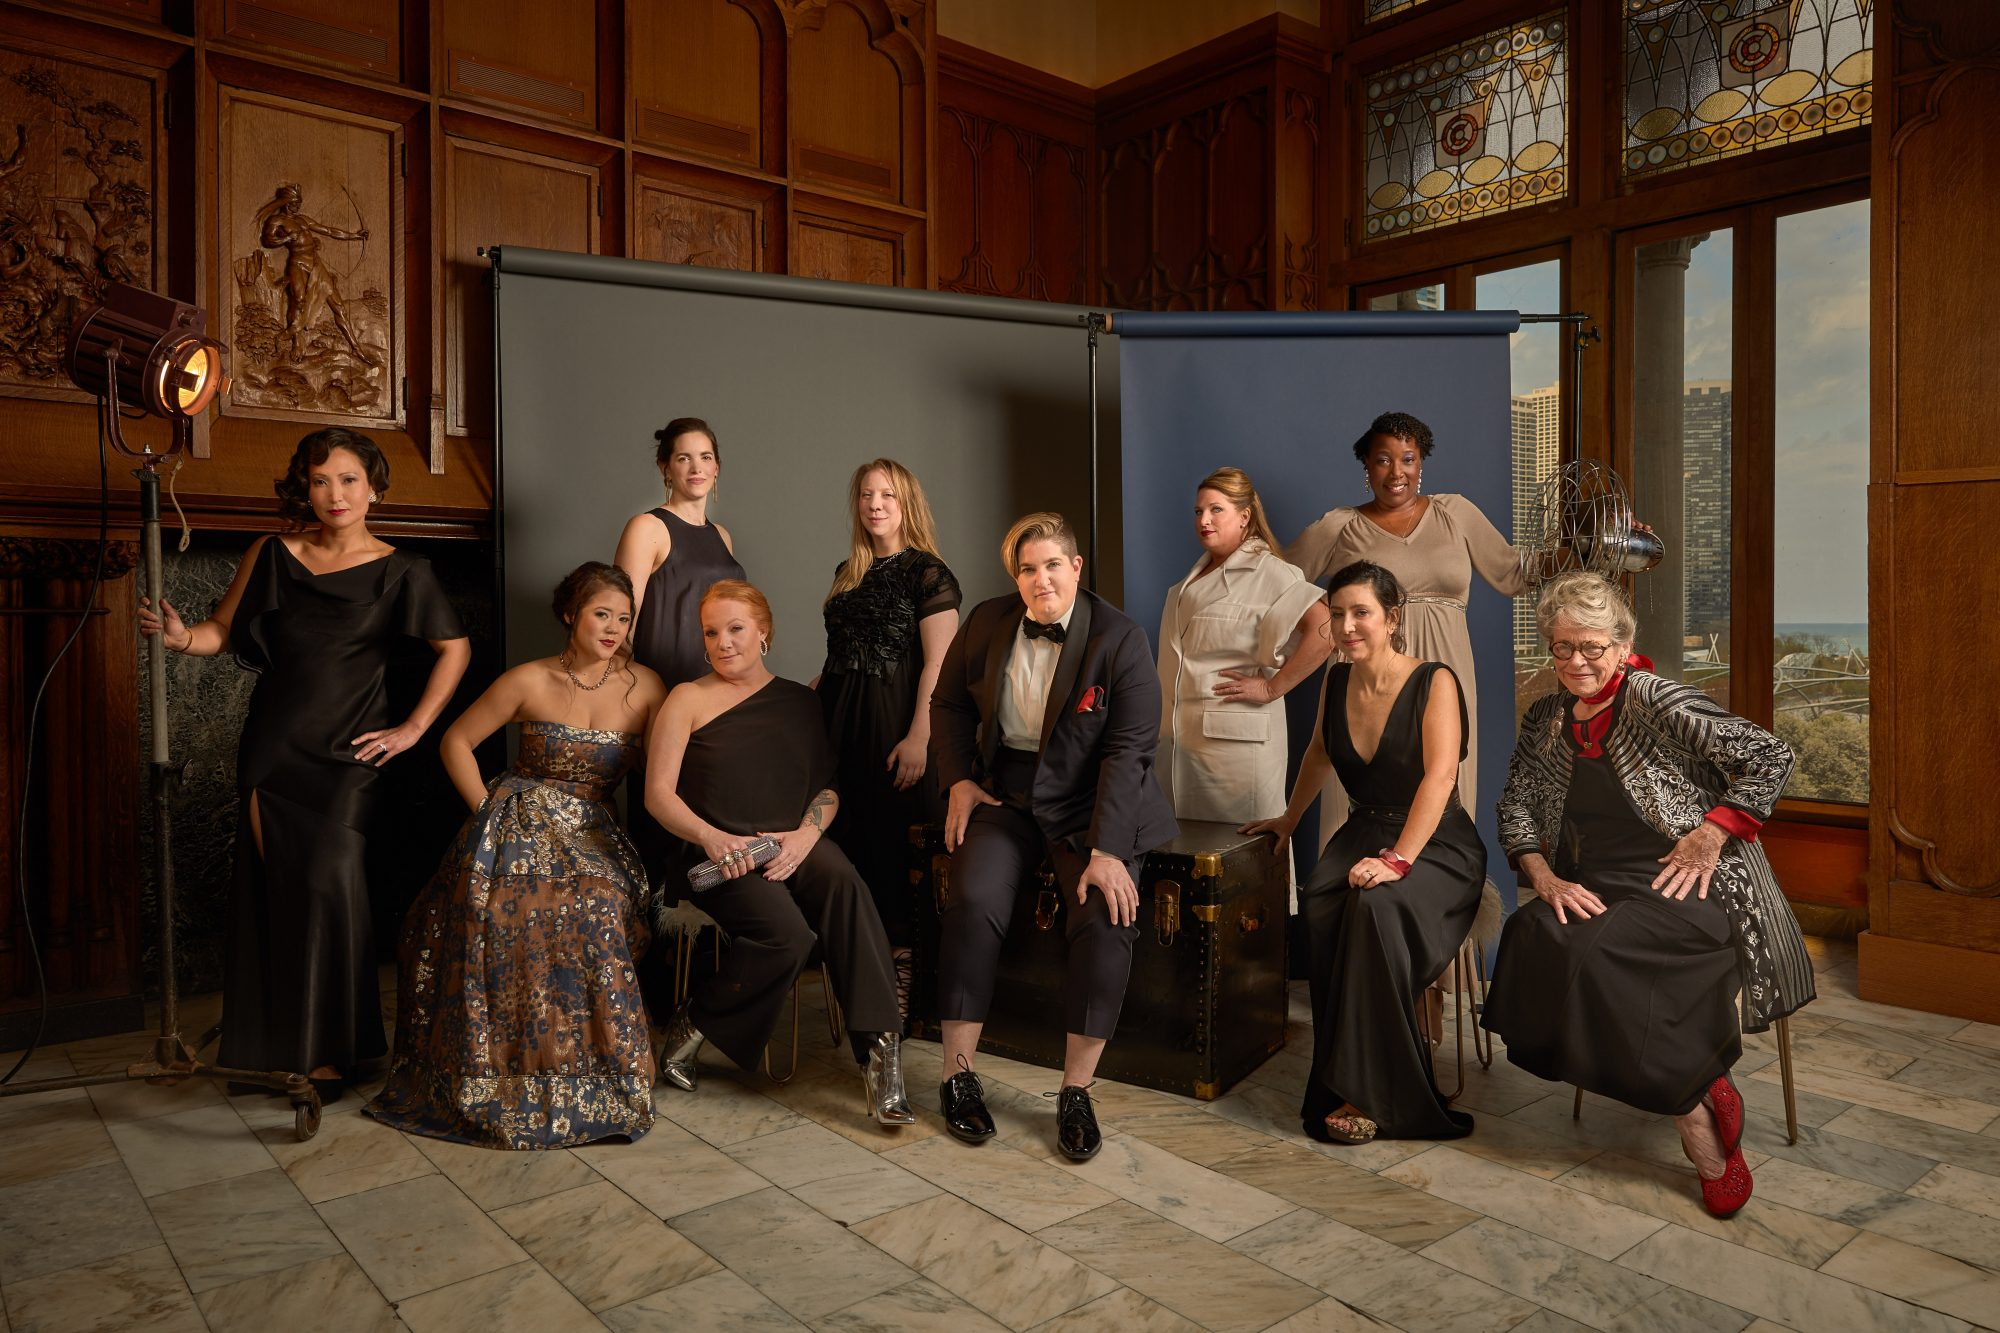 Female nominees James Beard Awards